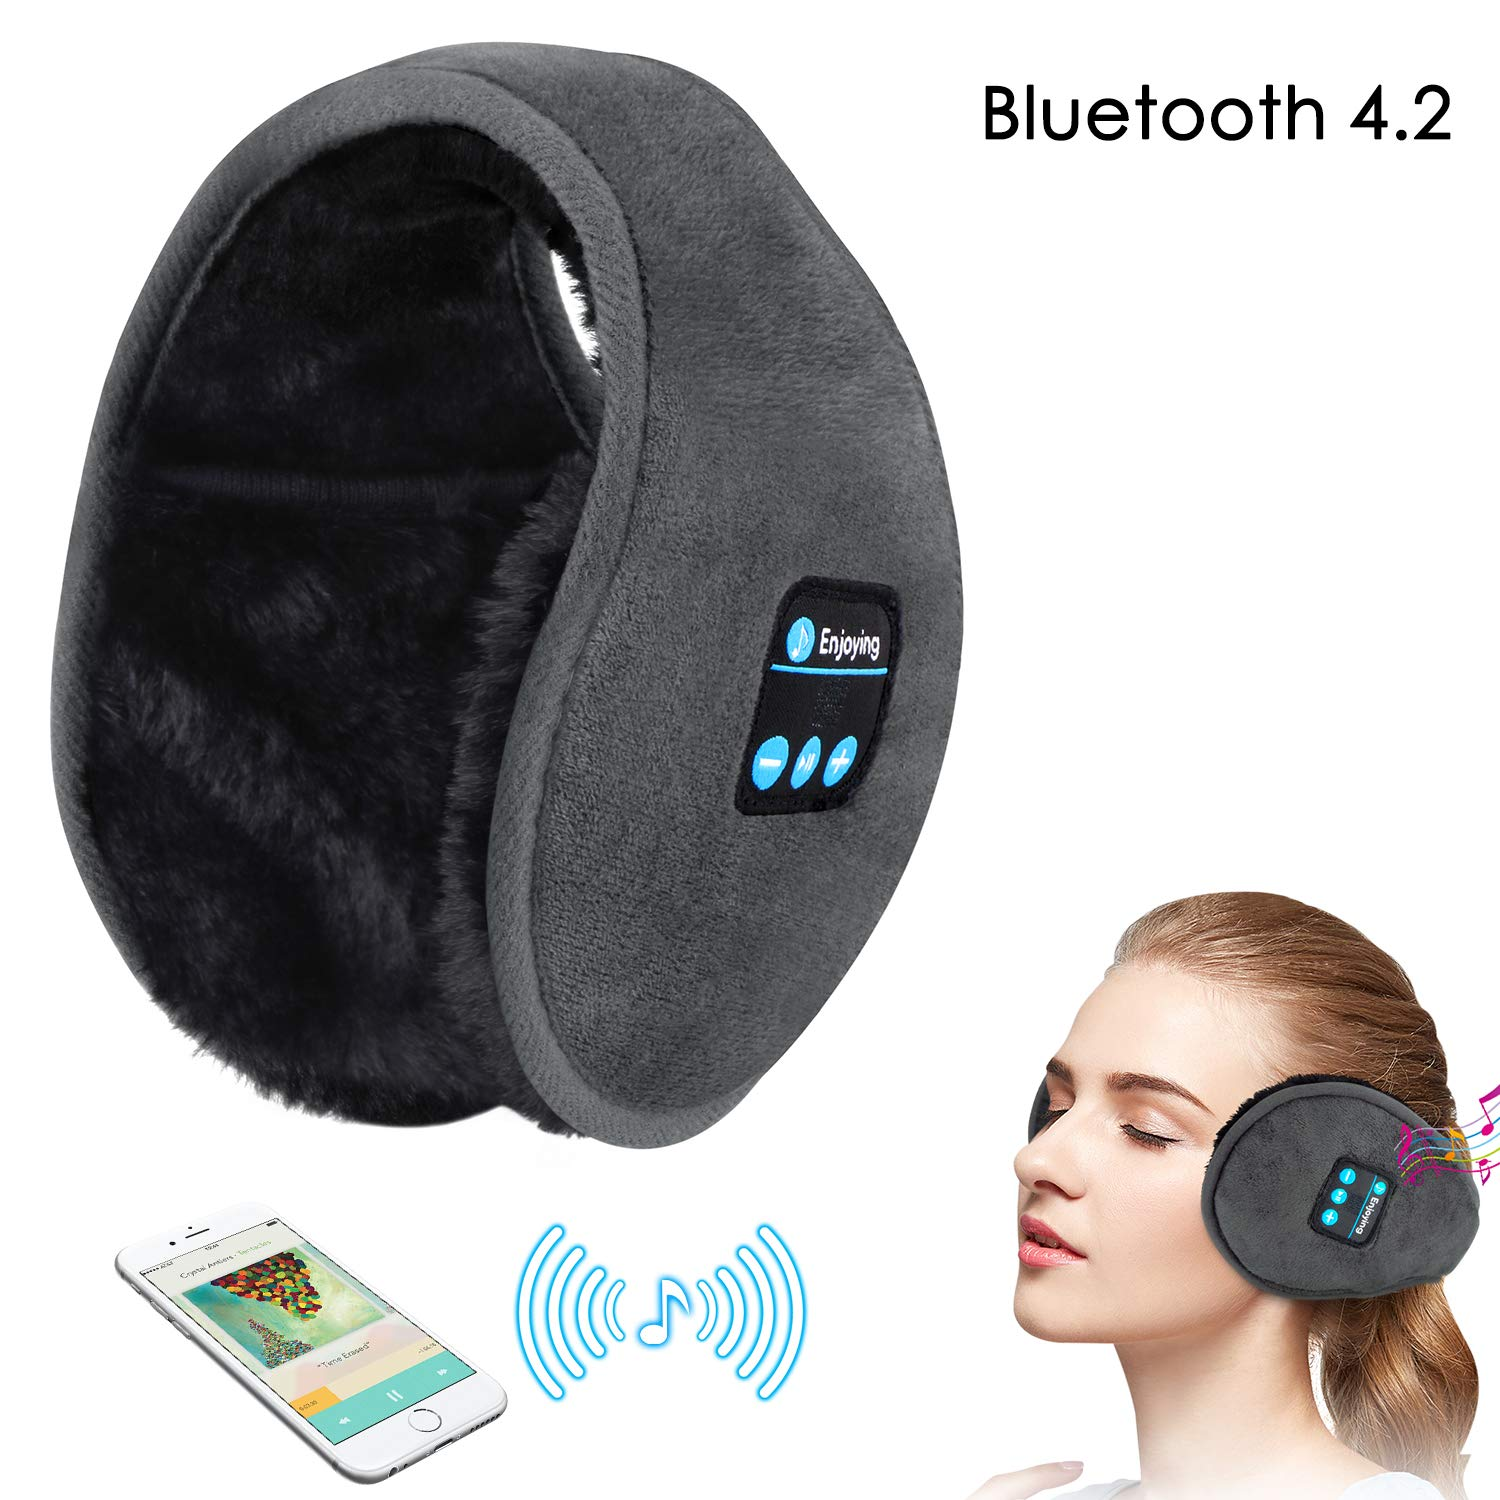 Earmuffs Headphones,WU-MINGLU Bluetooth Earmuff Headphones,Wireless Over-Ear Ear Warmer,Hi-Fi Stereo Headset,Foldable, Winter Earmuffs for Women & Men,Ear Muffs for Walking,Indoor Outdoors (Grey)